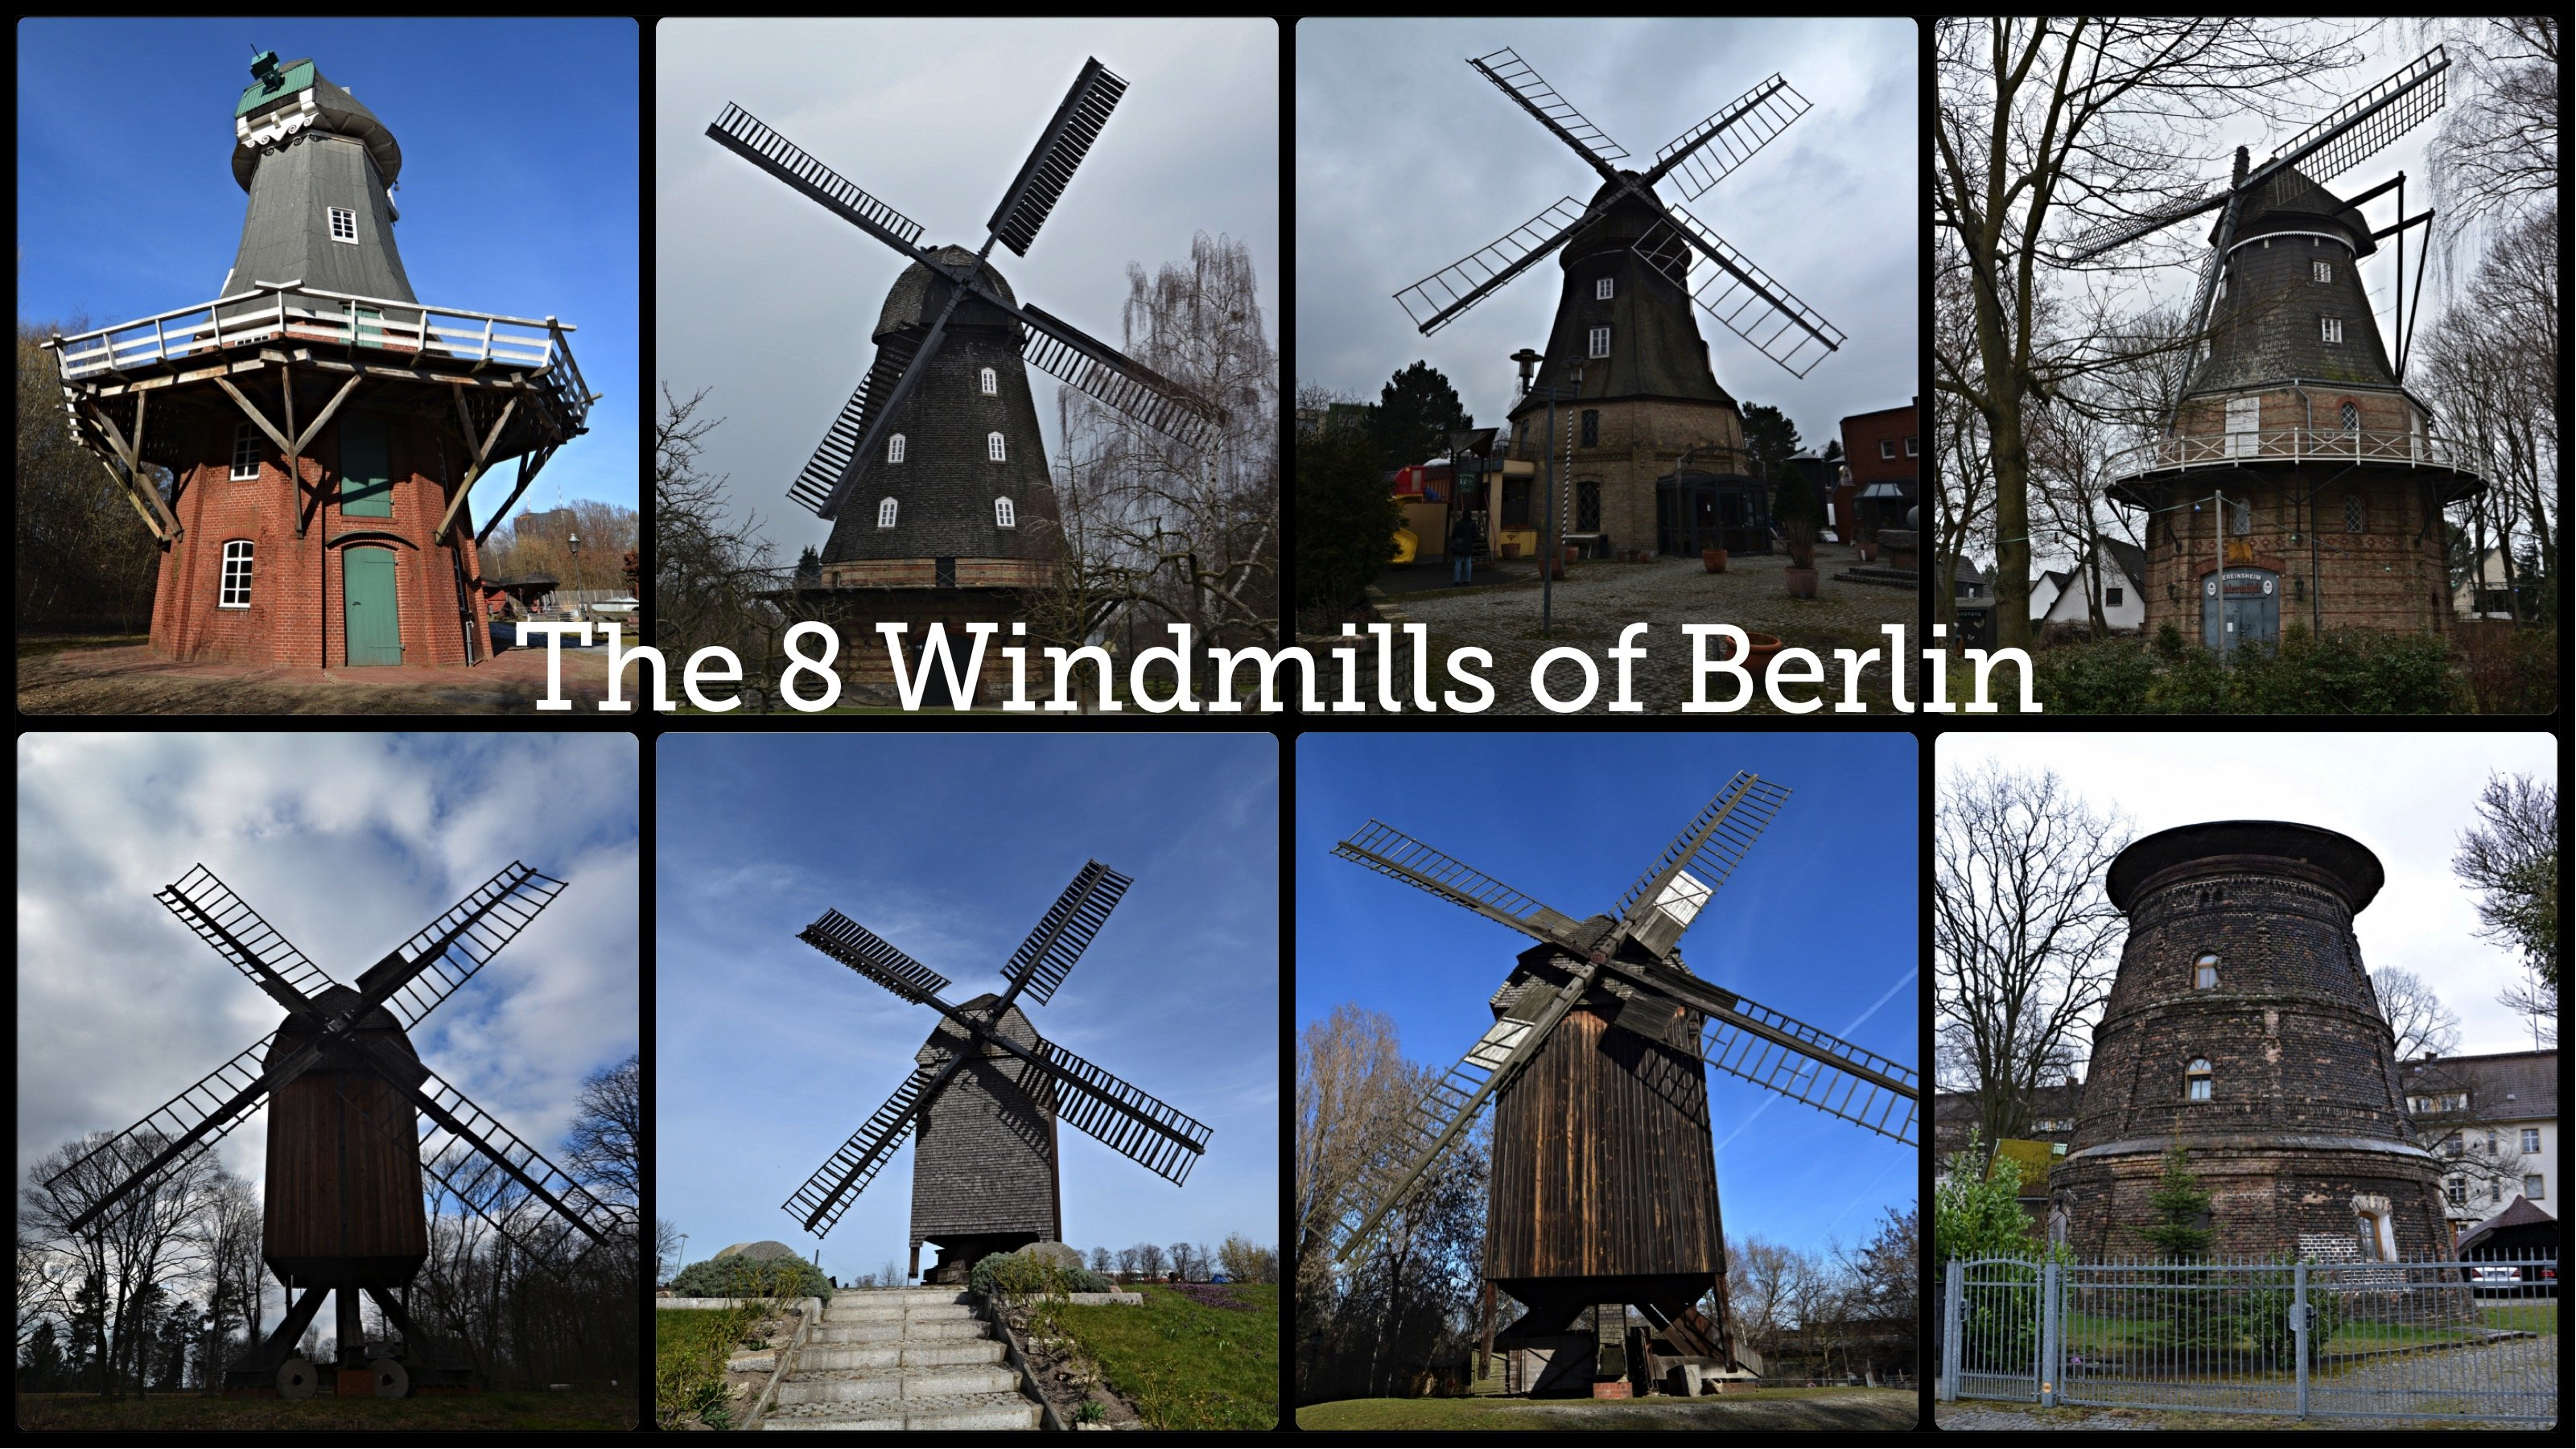 berlin windmills